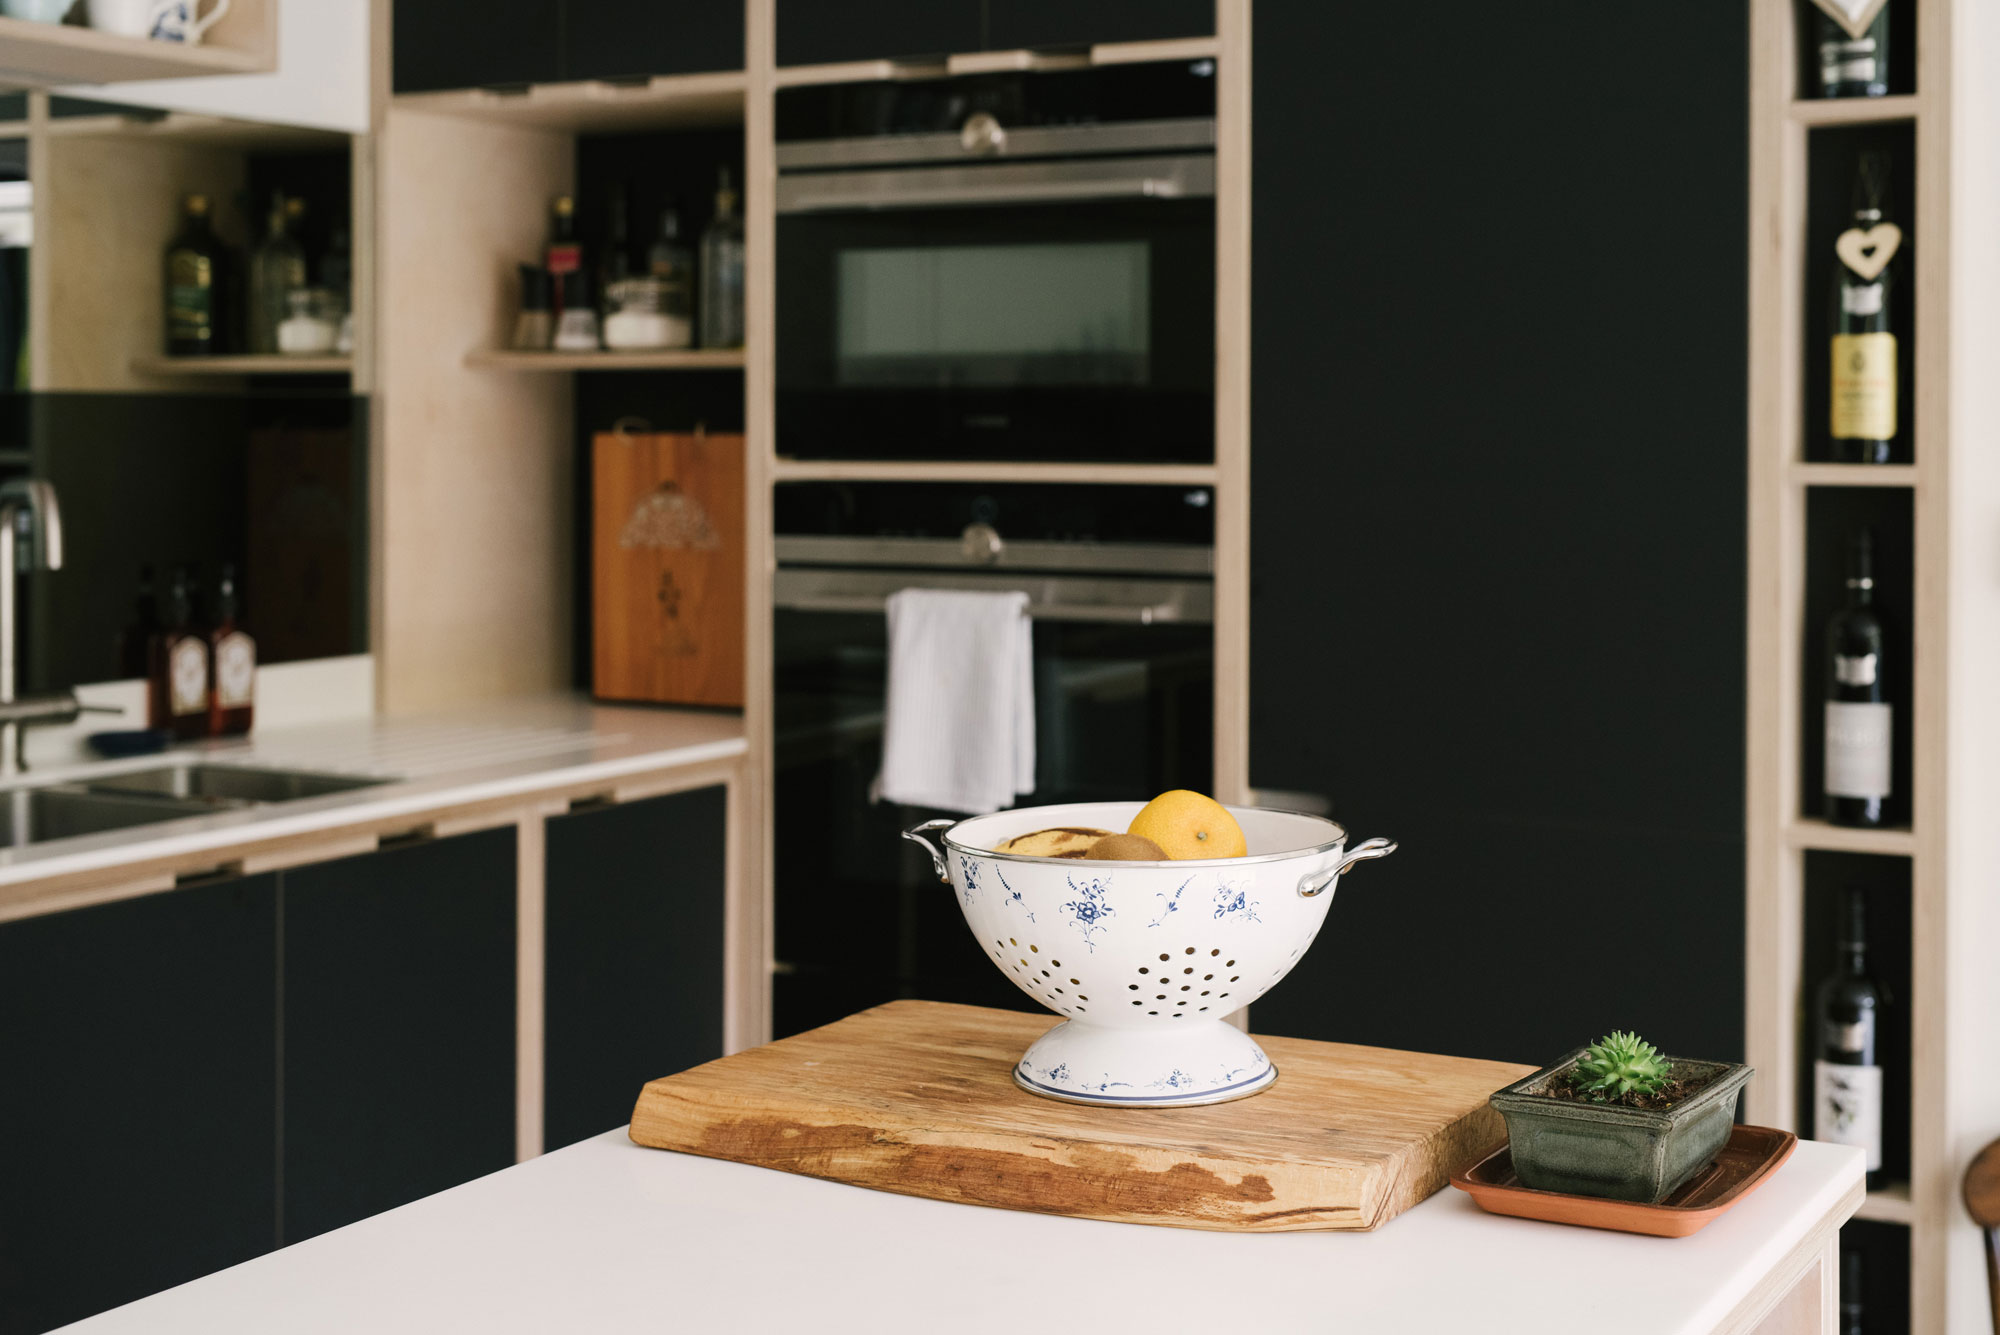 Kitchen With Mirror Splash Back - Colander of Lemons